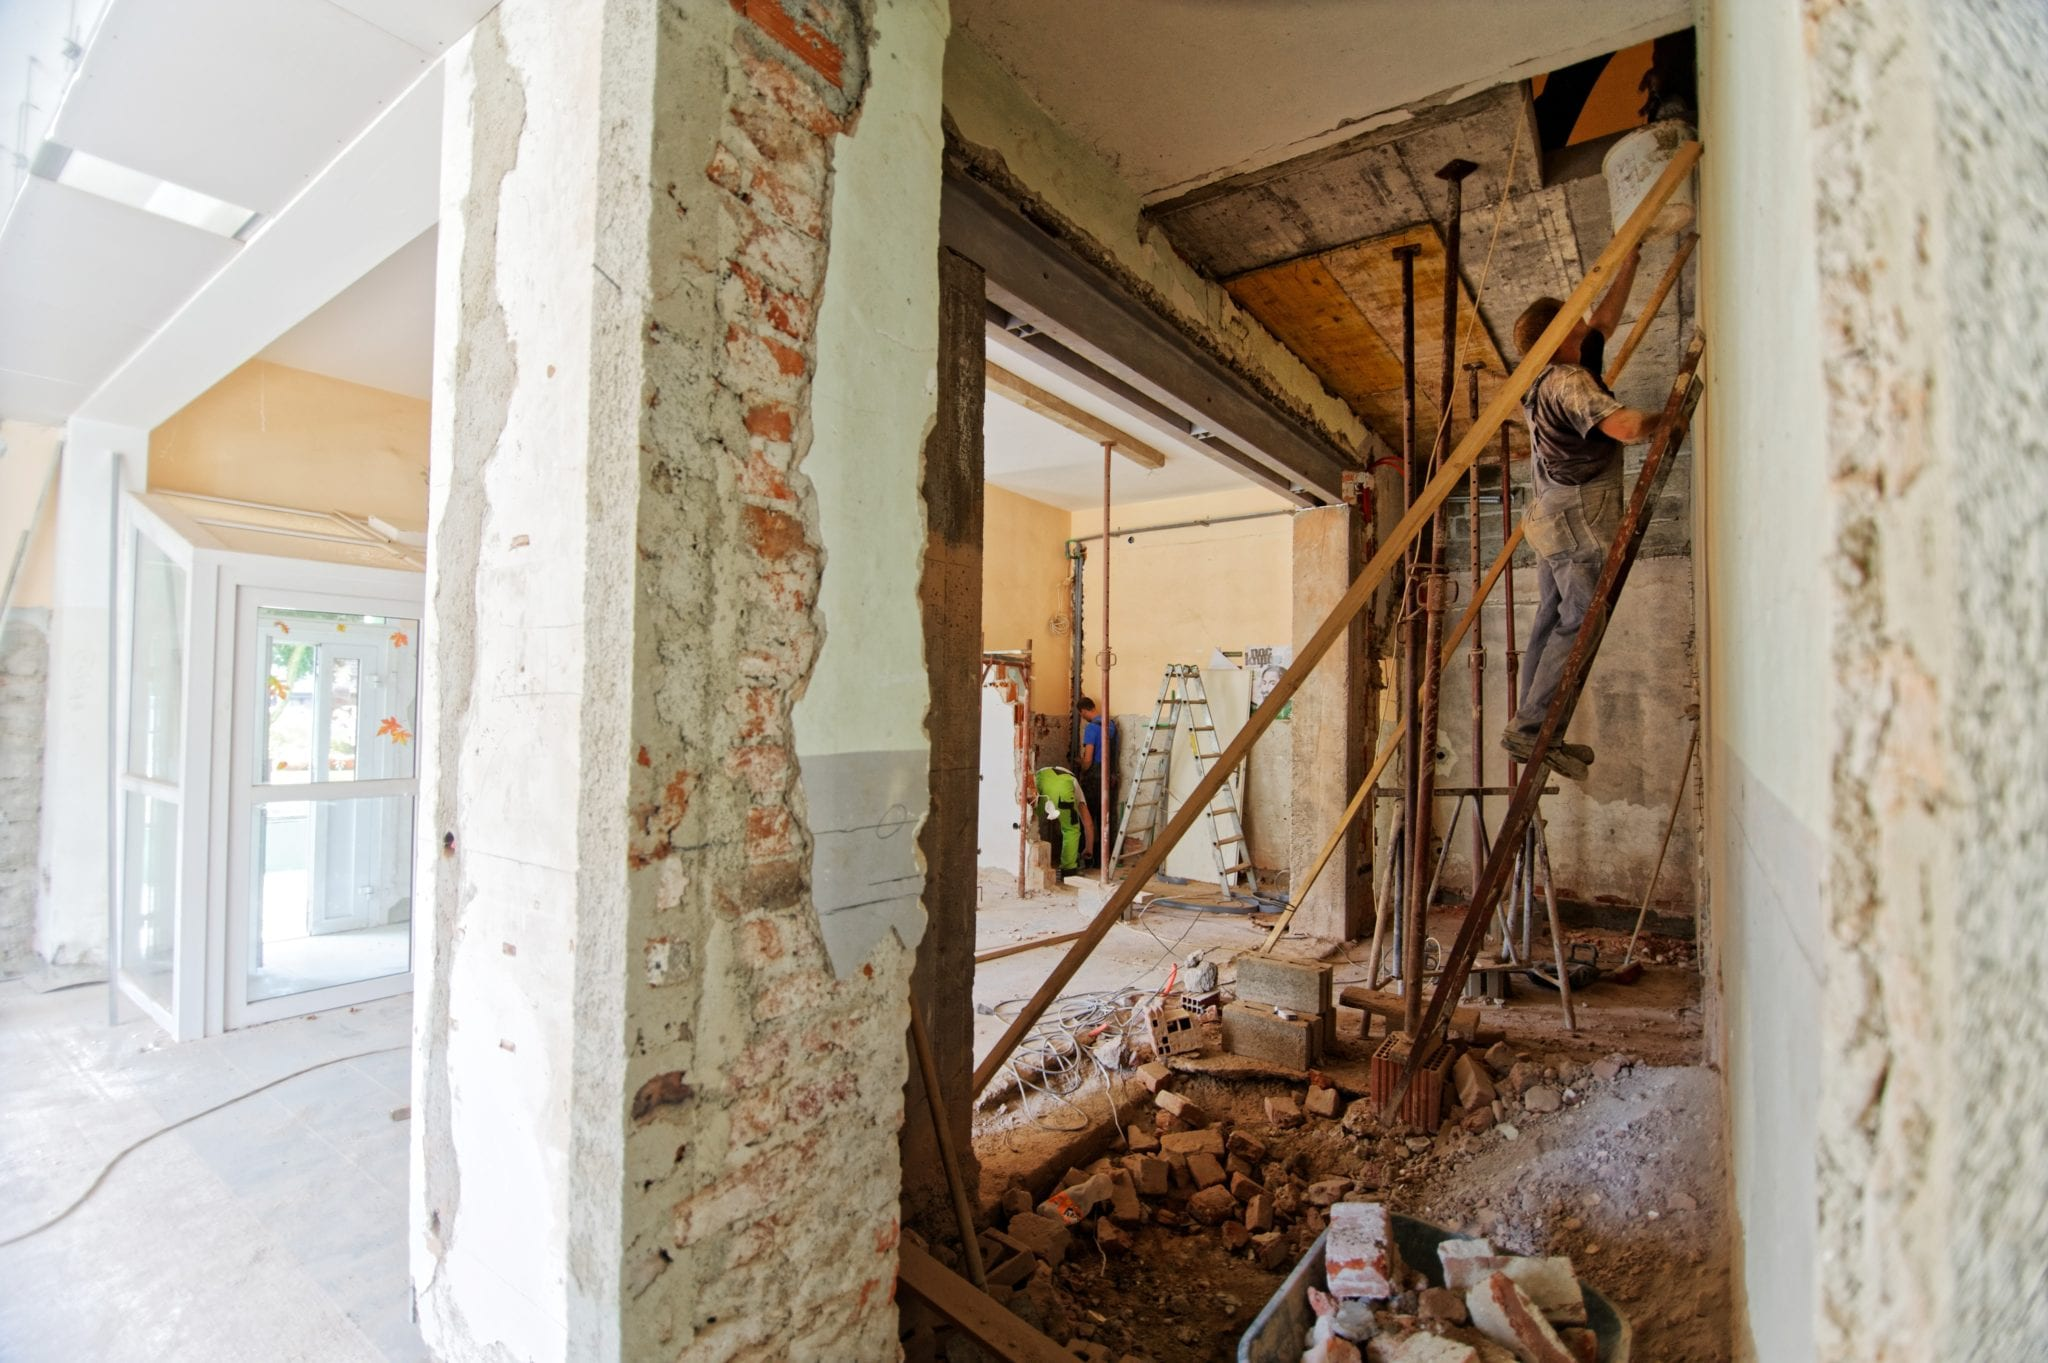 What To Do About Asbestos In Your Home